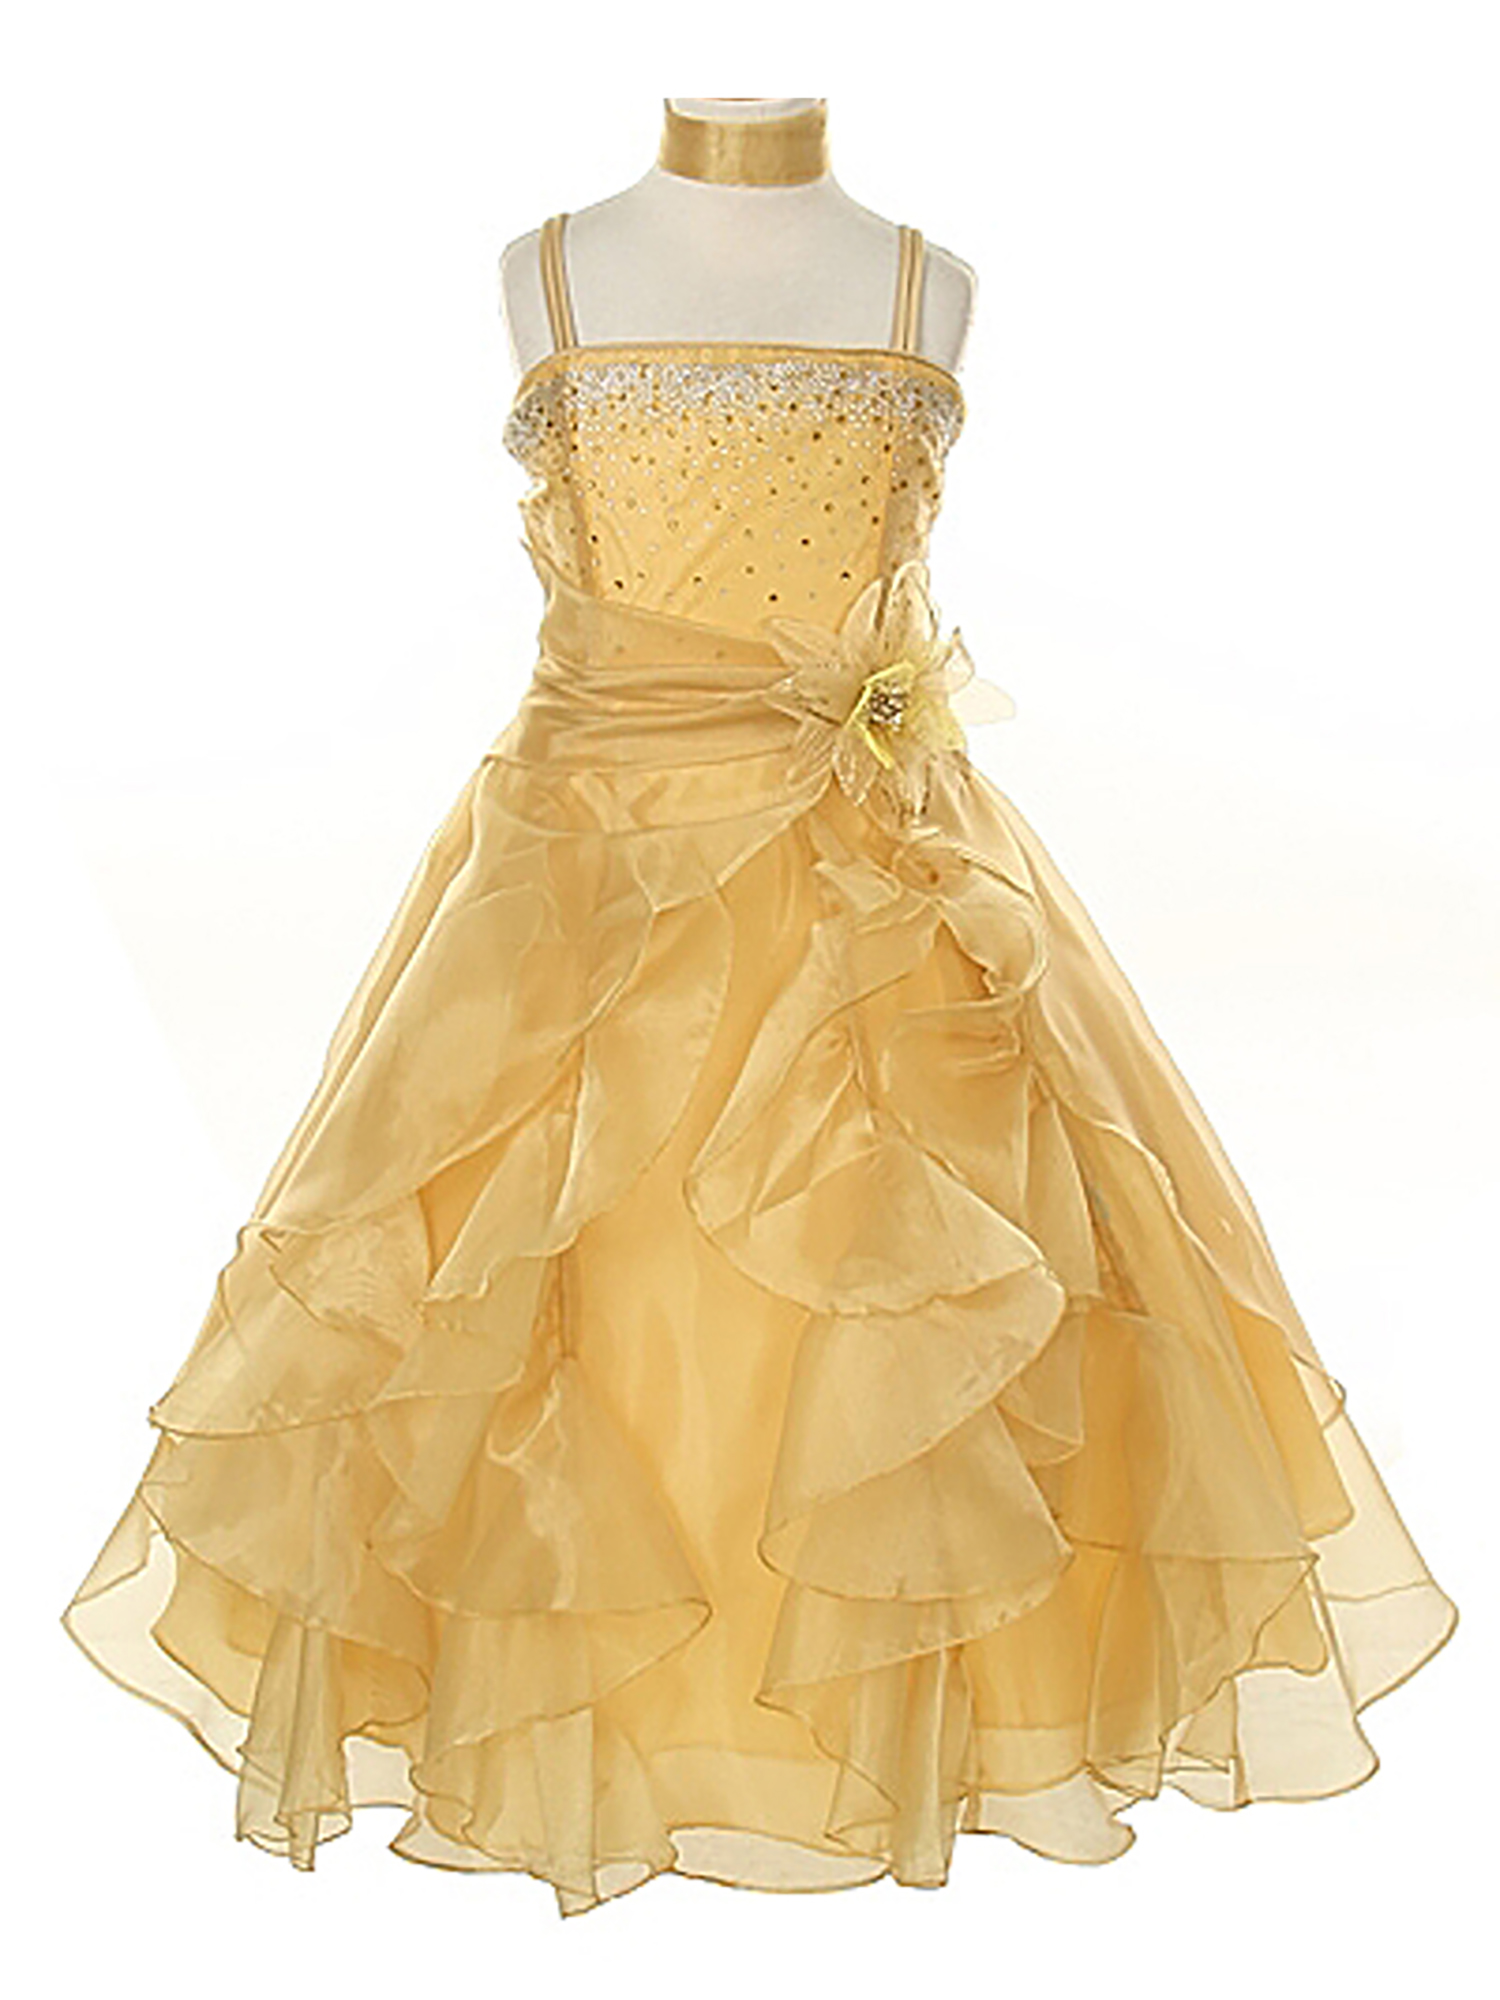 Dempsey Marie Baby & Girls Crystal Organza Rhinestone Party Pageant Special Occasion Dress